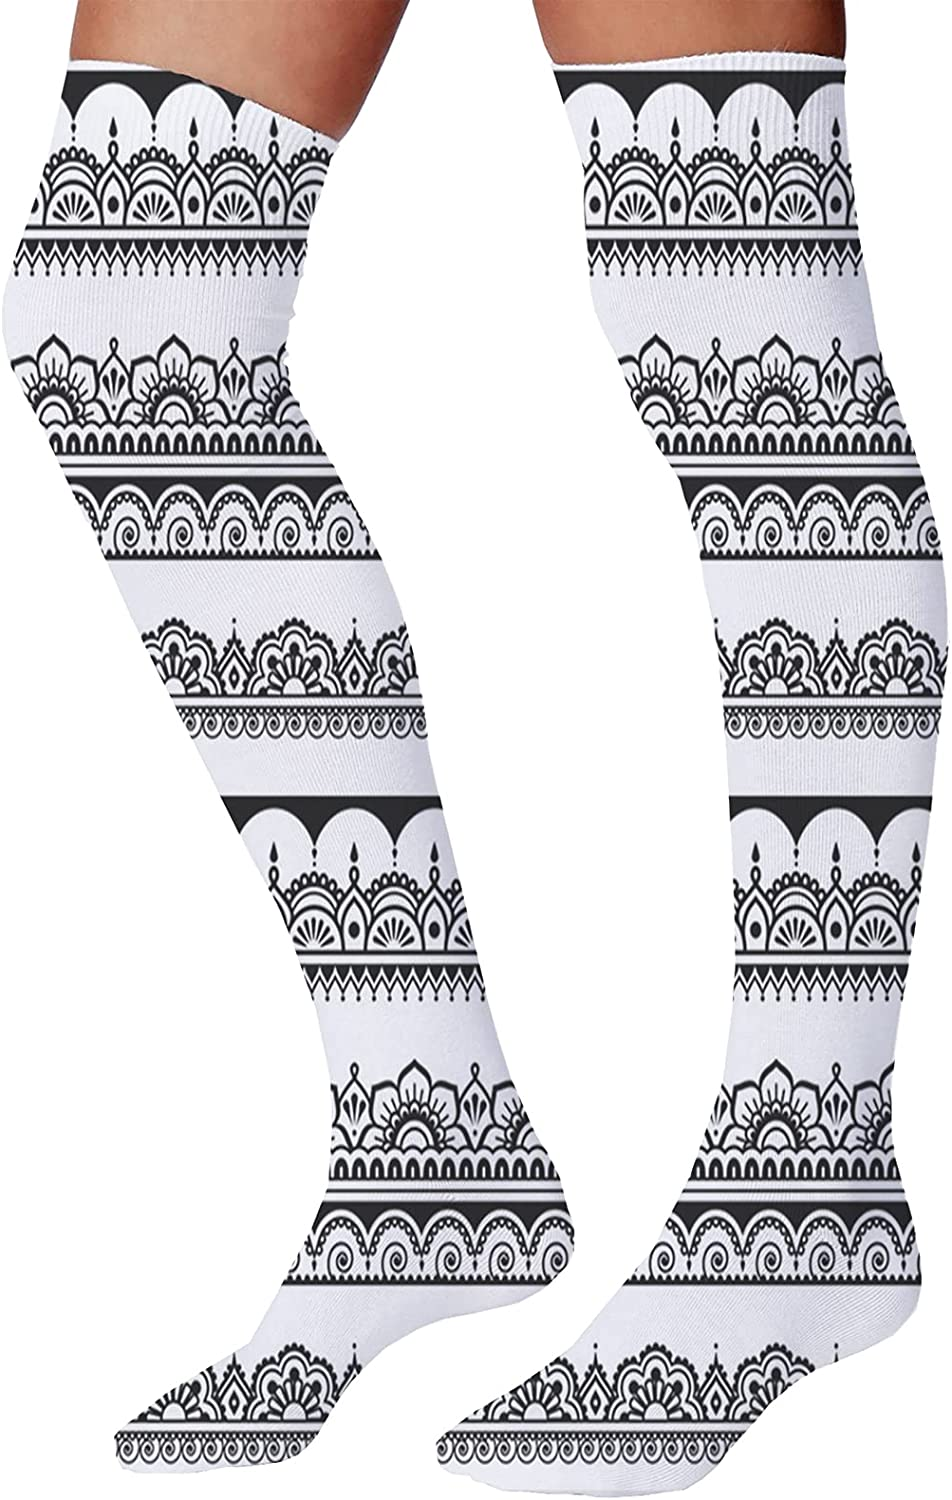 Men's and Women's Fun Socks,Monochrome Doodle Style Suits of Cards Spades Hearts and Clubs Gambling Pattern